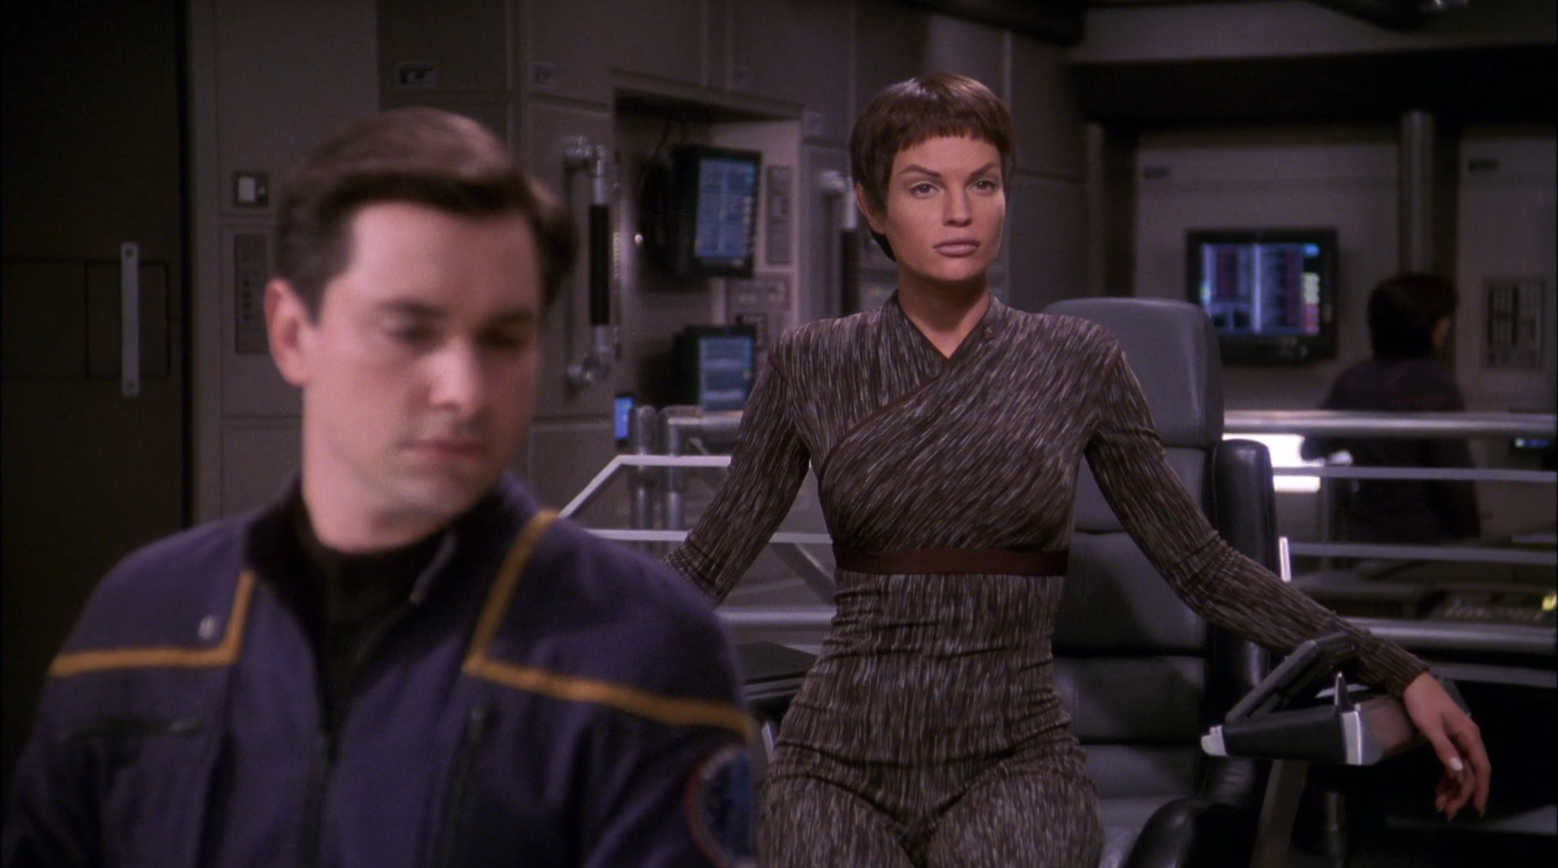 Jolene Blalock as T'Pol taking command of the Enterprise - Detention Star Trek Enterprise Season 1 Blu-ray Review